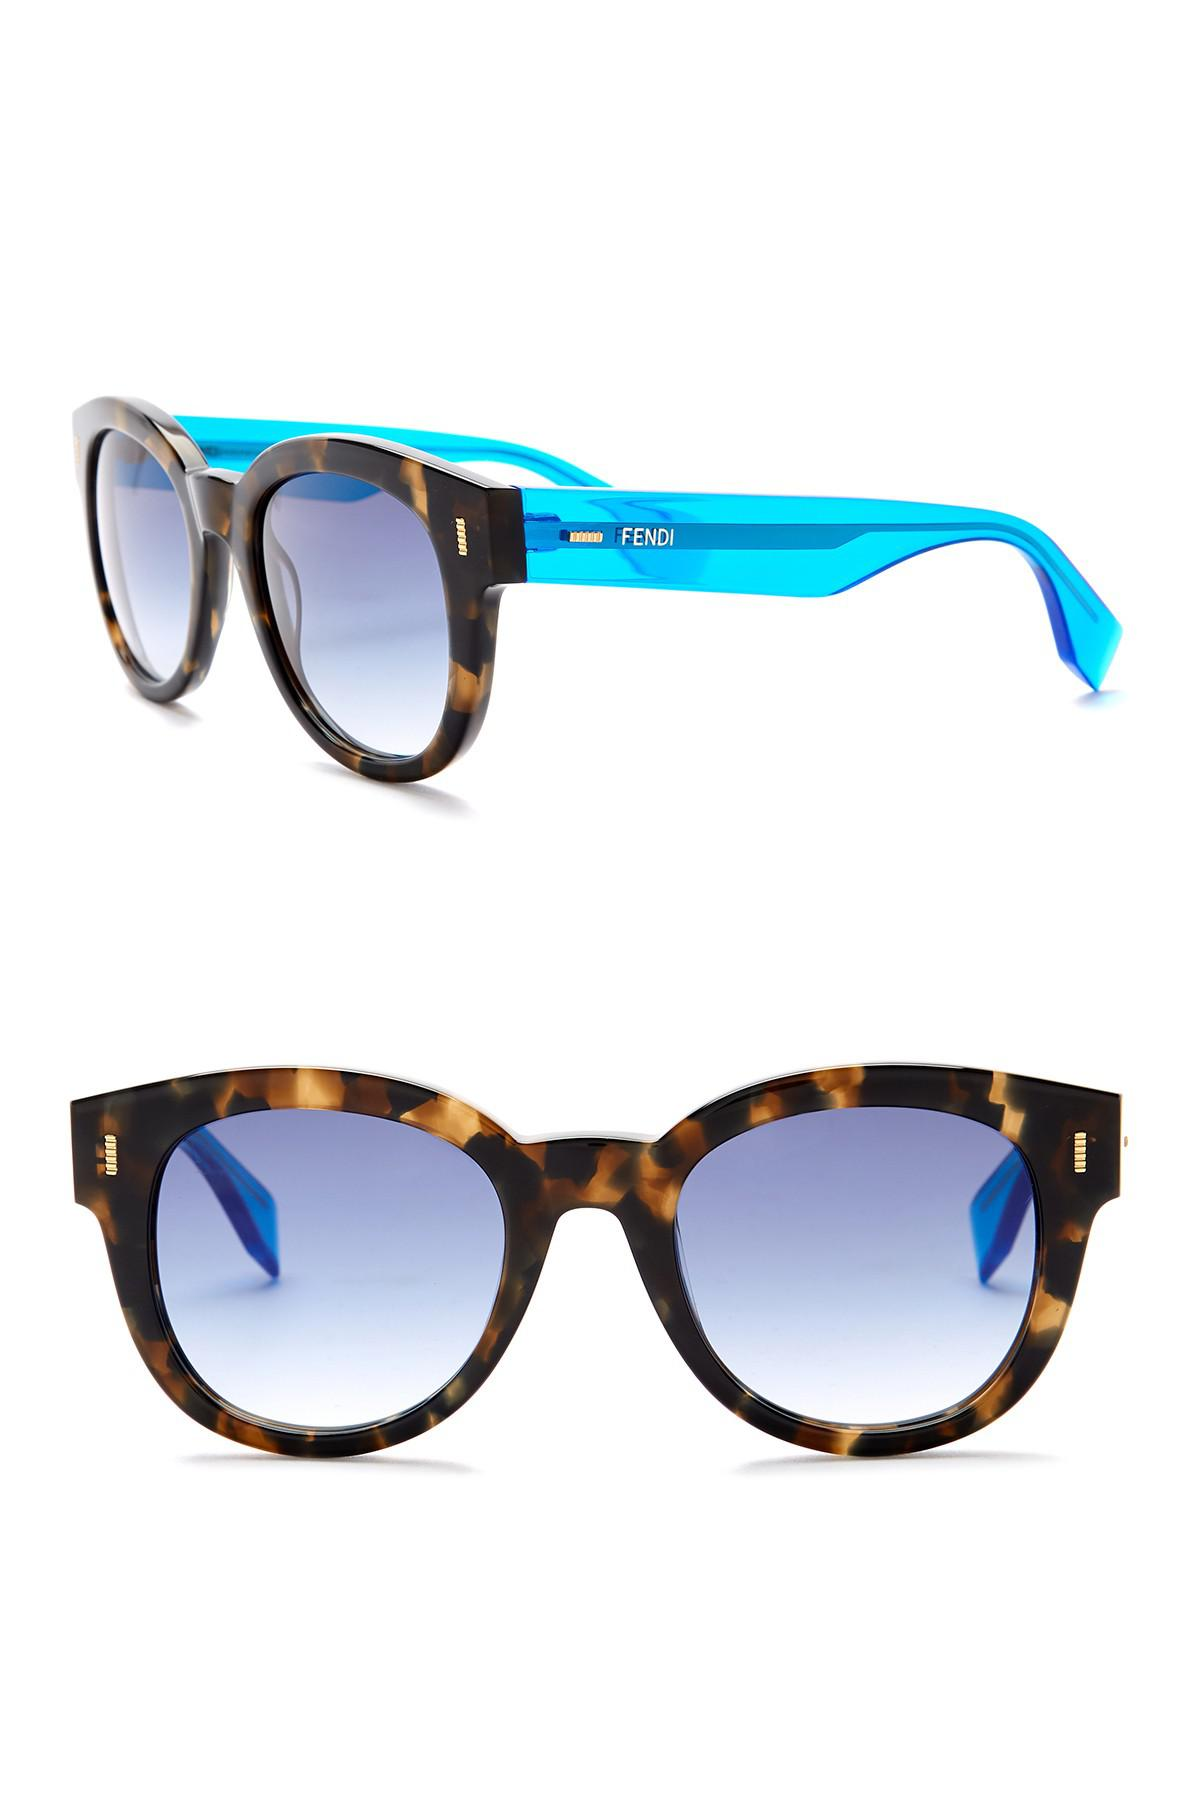 50f53ee1a7 Gallery. Previously sold at  Nordstrom Rack · Women s Heart Shaped  Sunglasses ...